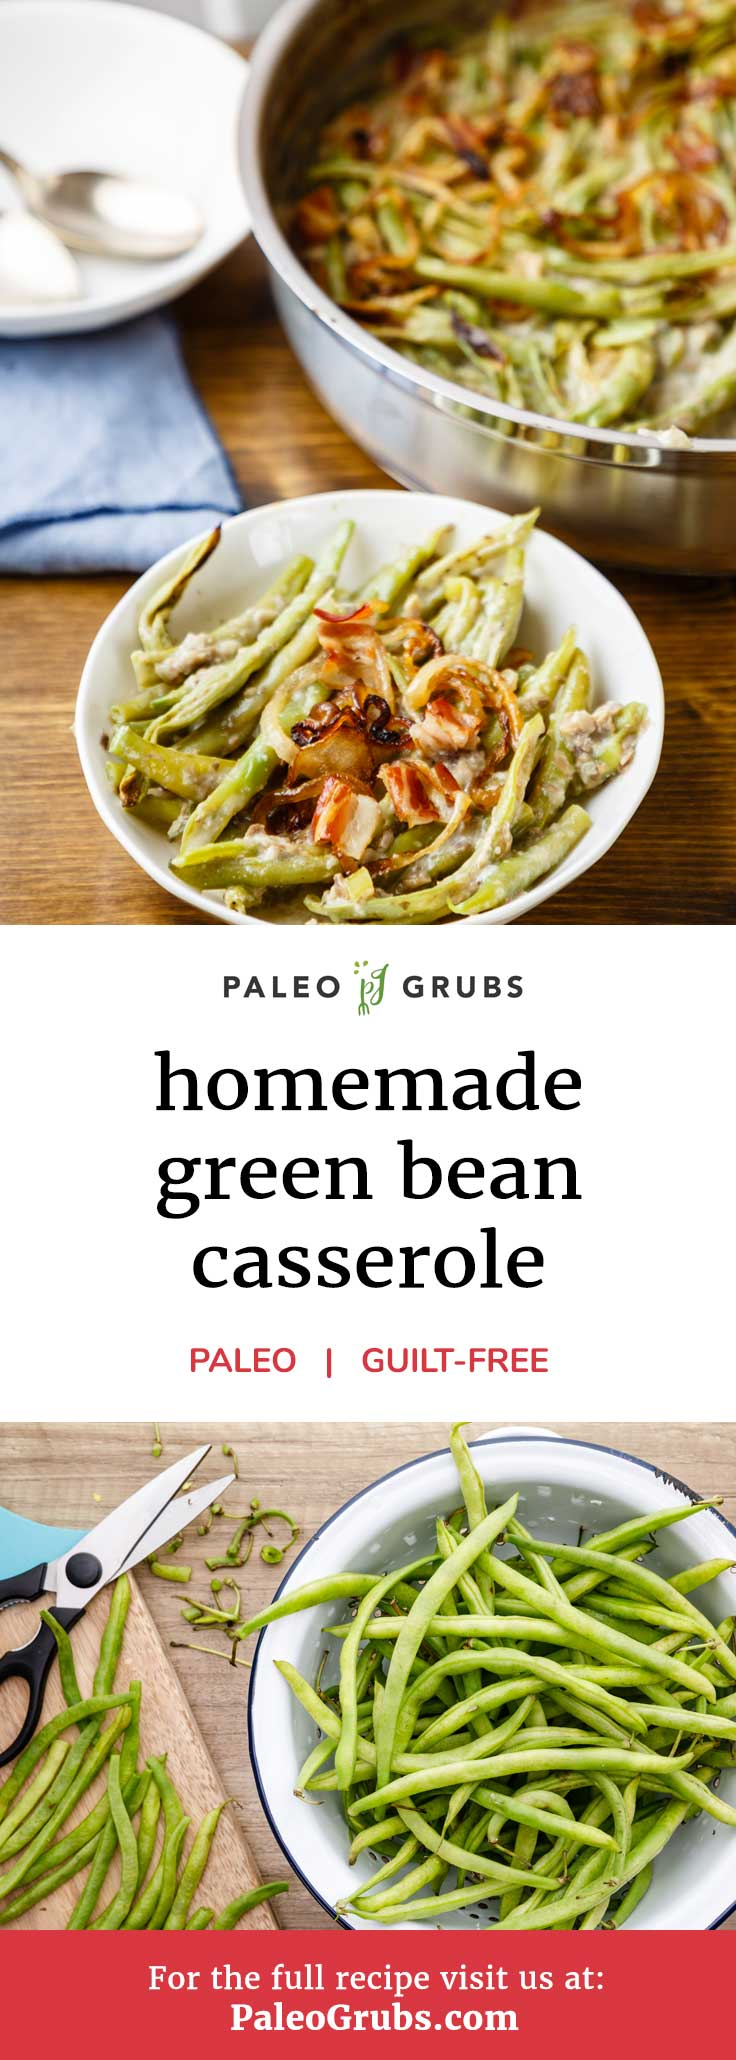 There's two things that I just love about the holiday season. The first is getting together and spending time with all of my loved ones. And the second? You guessed it -- all of the delicious food that's on offer. This green bean casserole recipe is the perfect dish to enjoy with your friends and family!